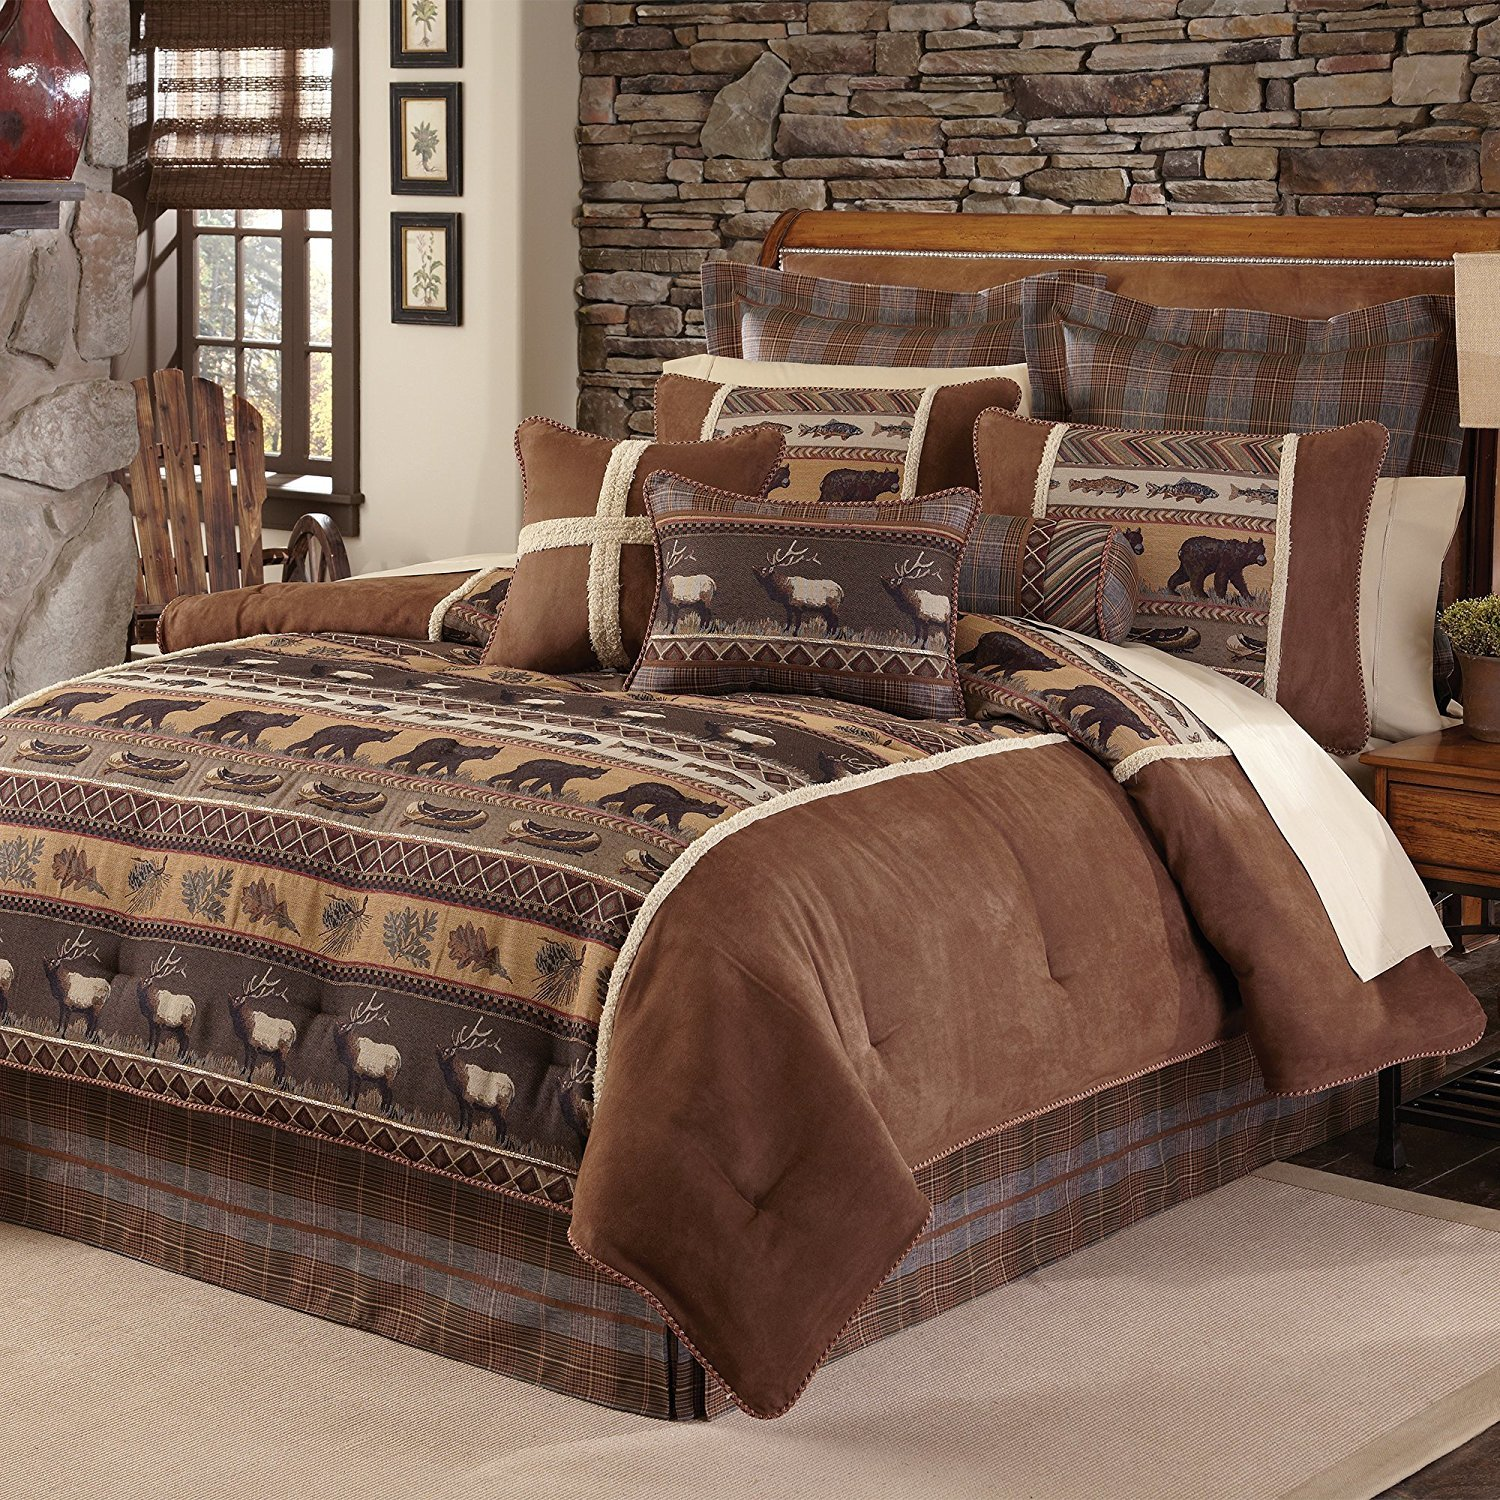 product bor bedding hotel set be spheres shop bed the store brown borgata xlrg